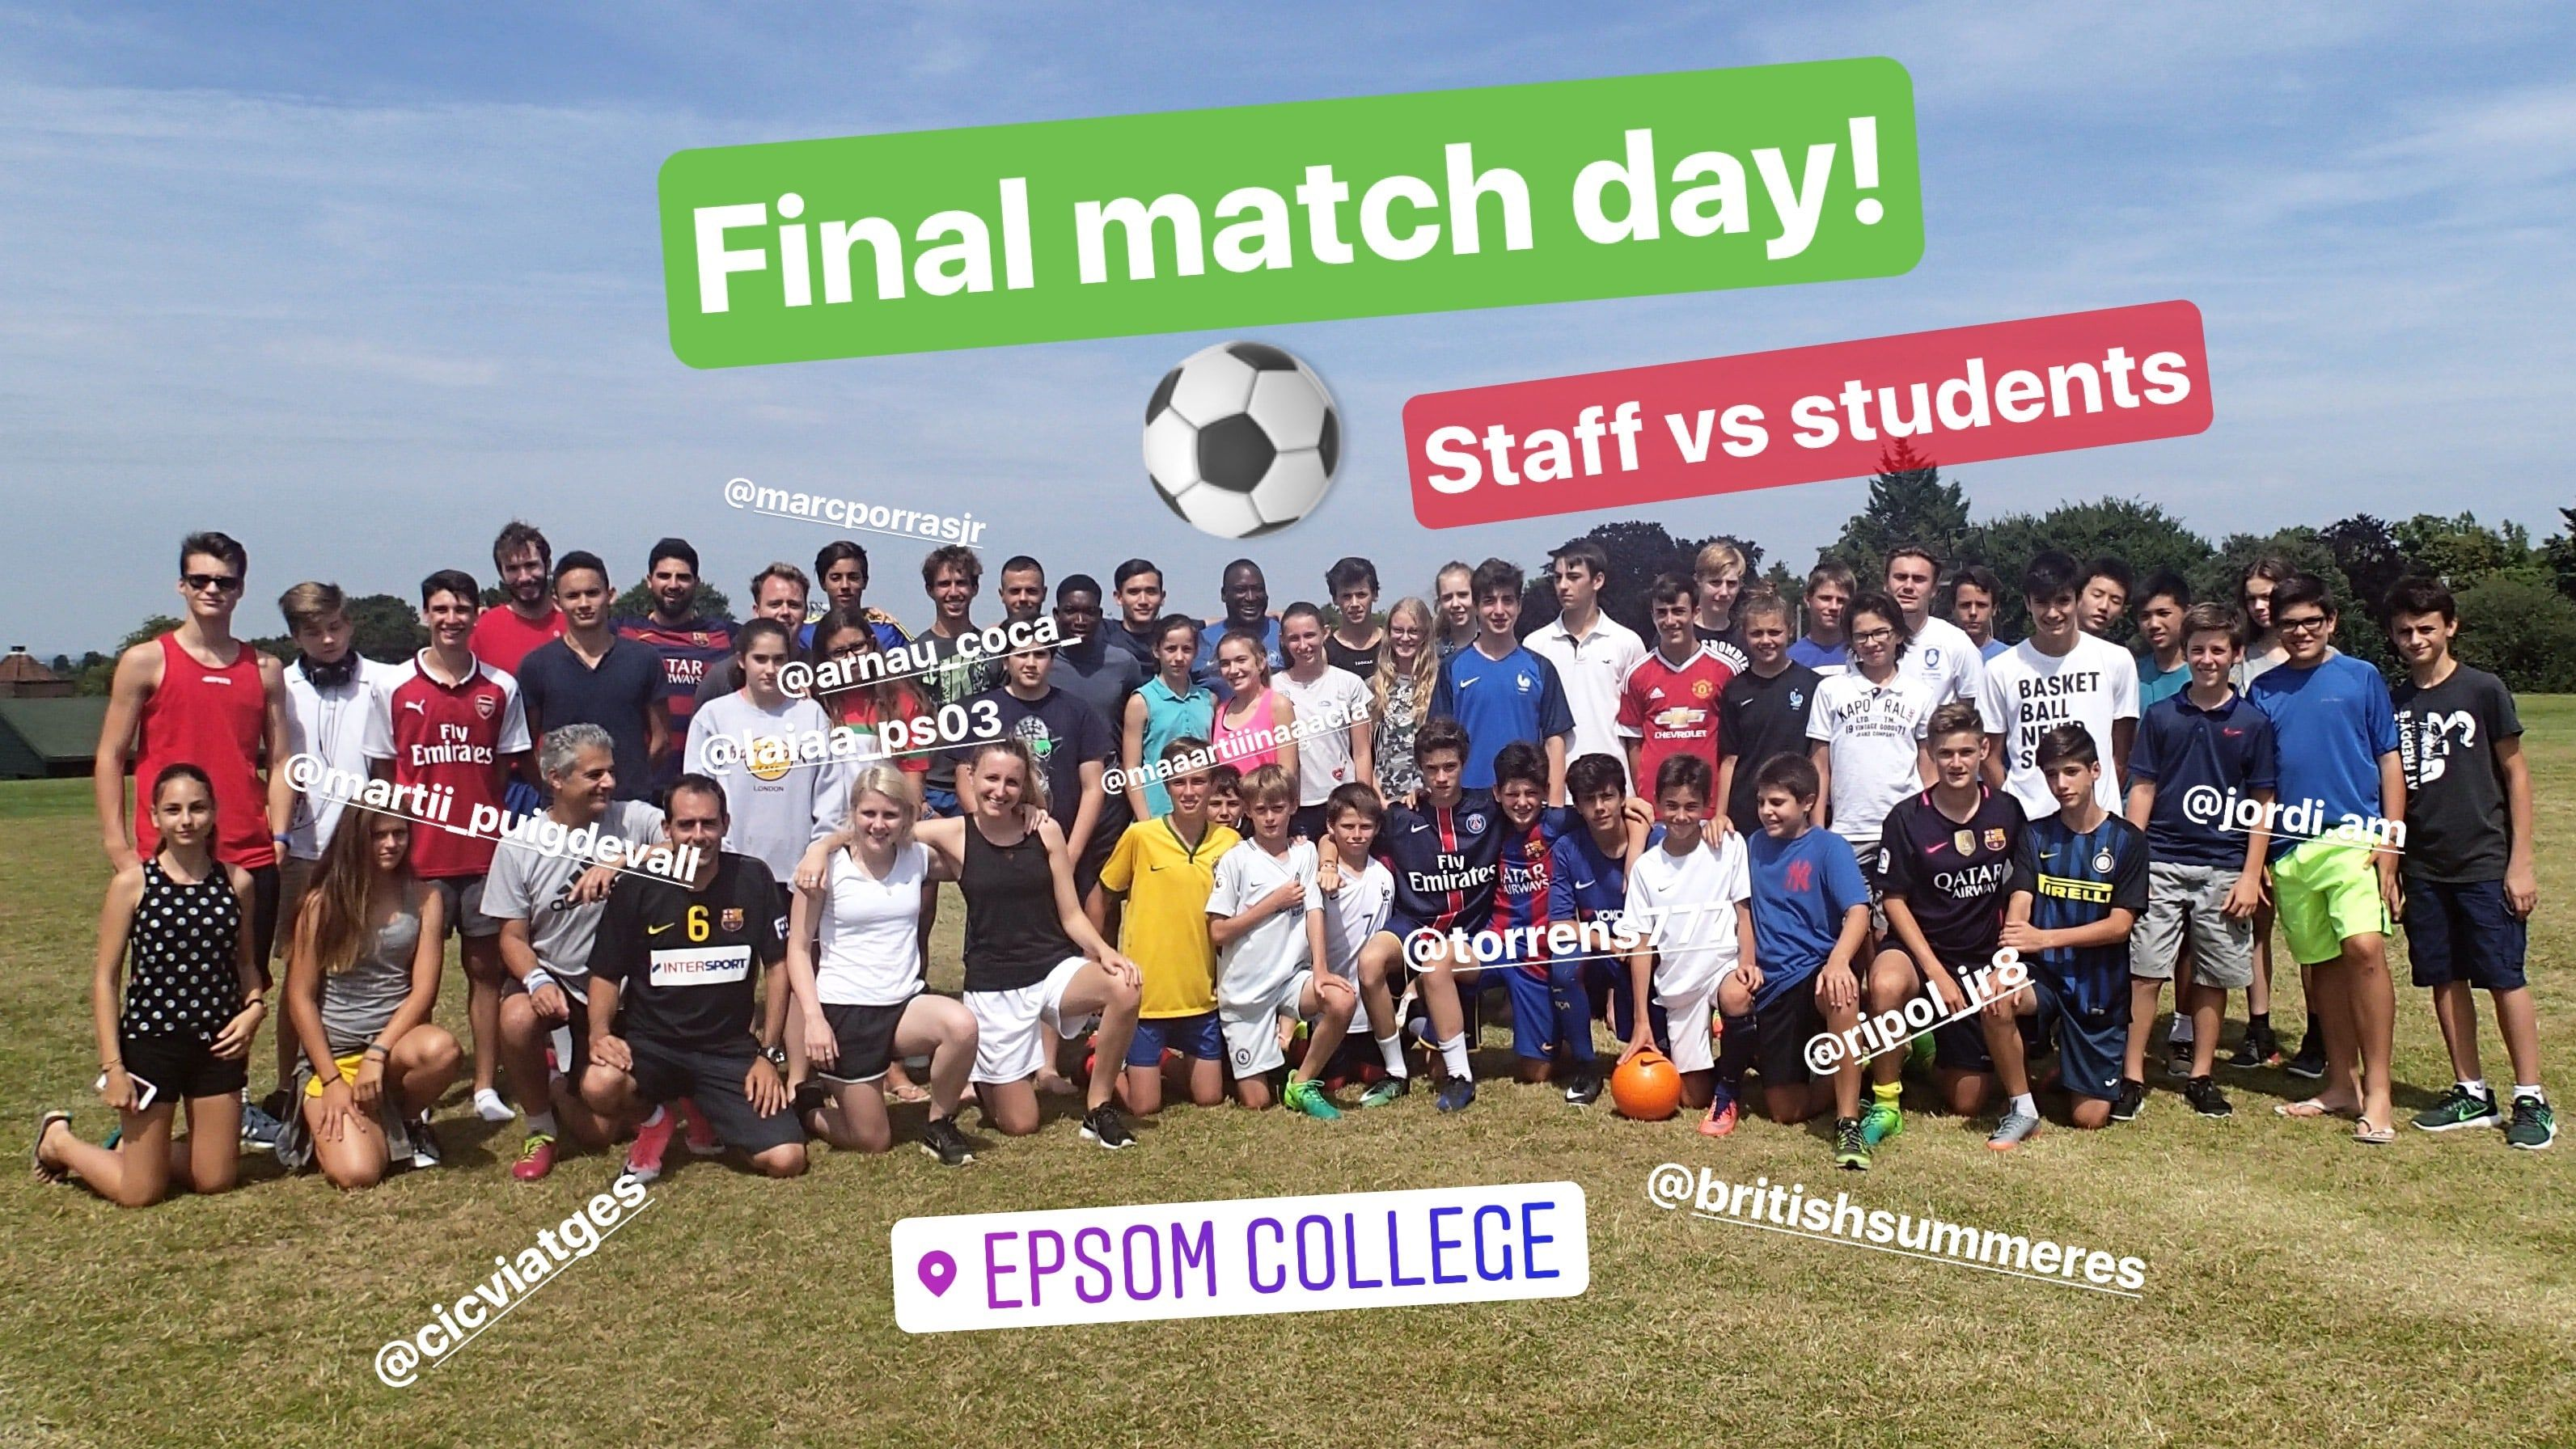 Staff vs Student match Epsom Sports ideal para hacer